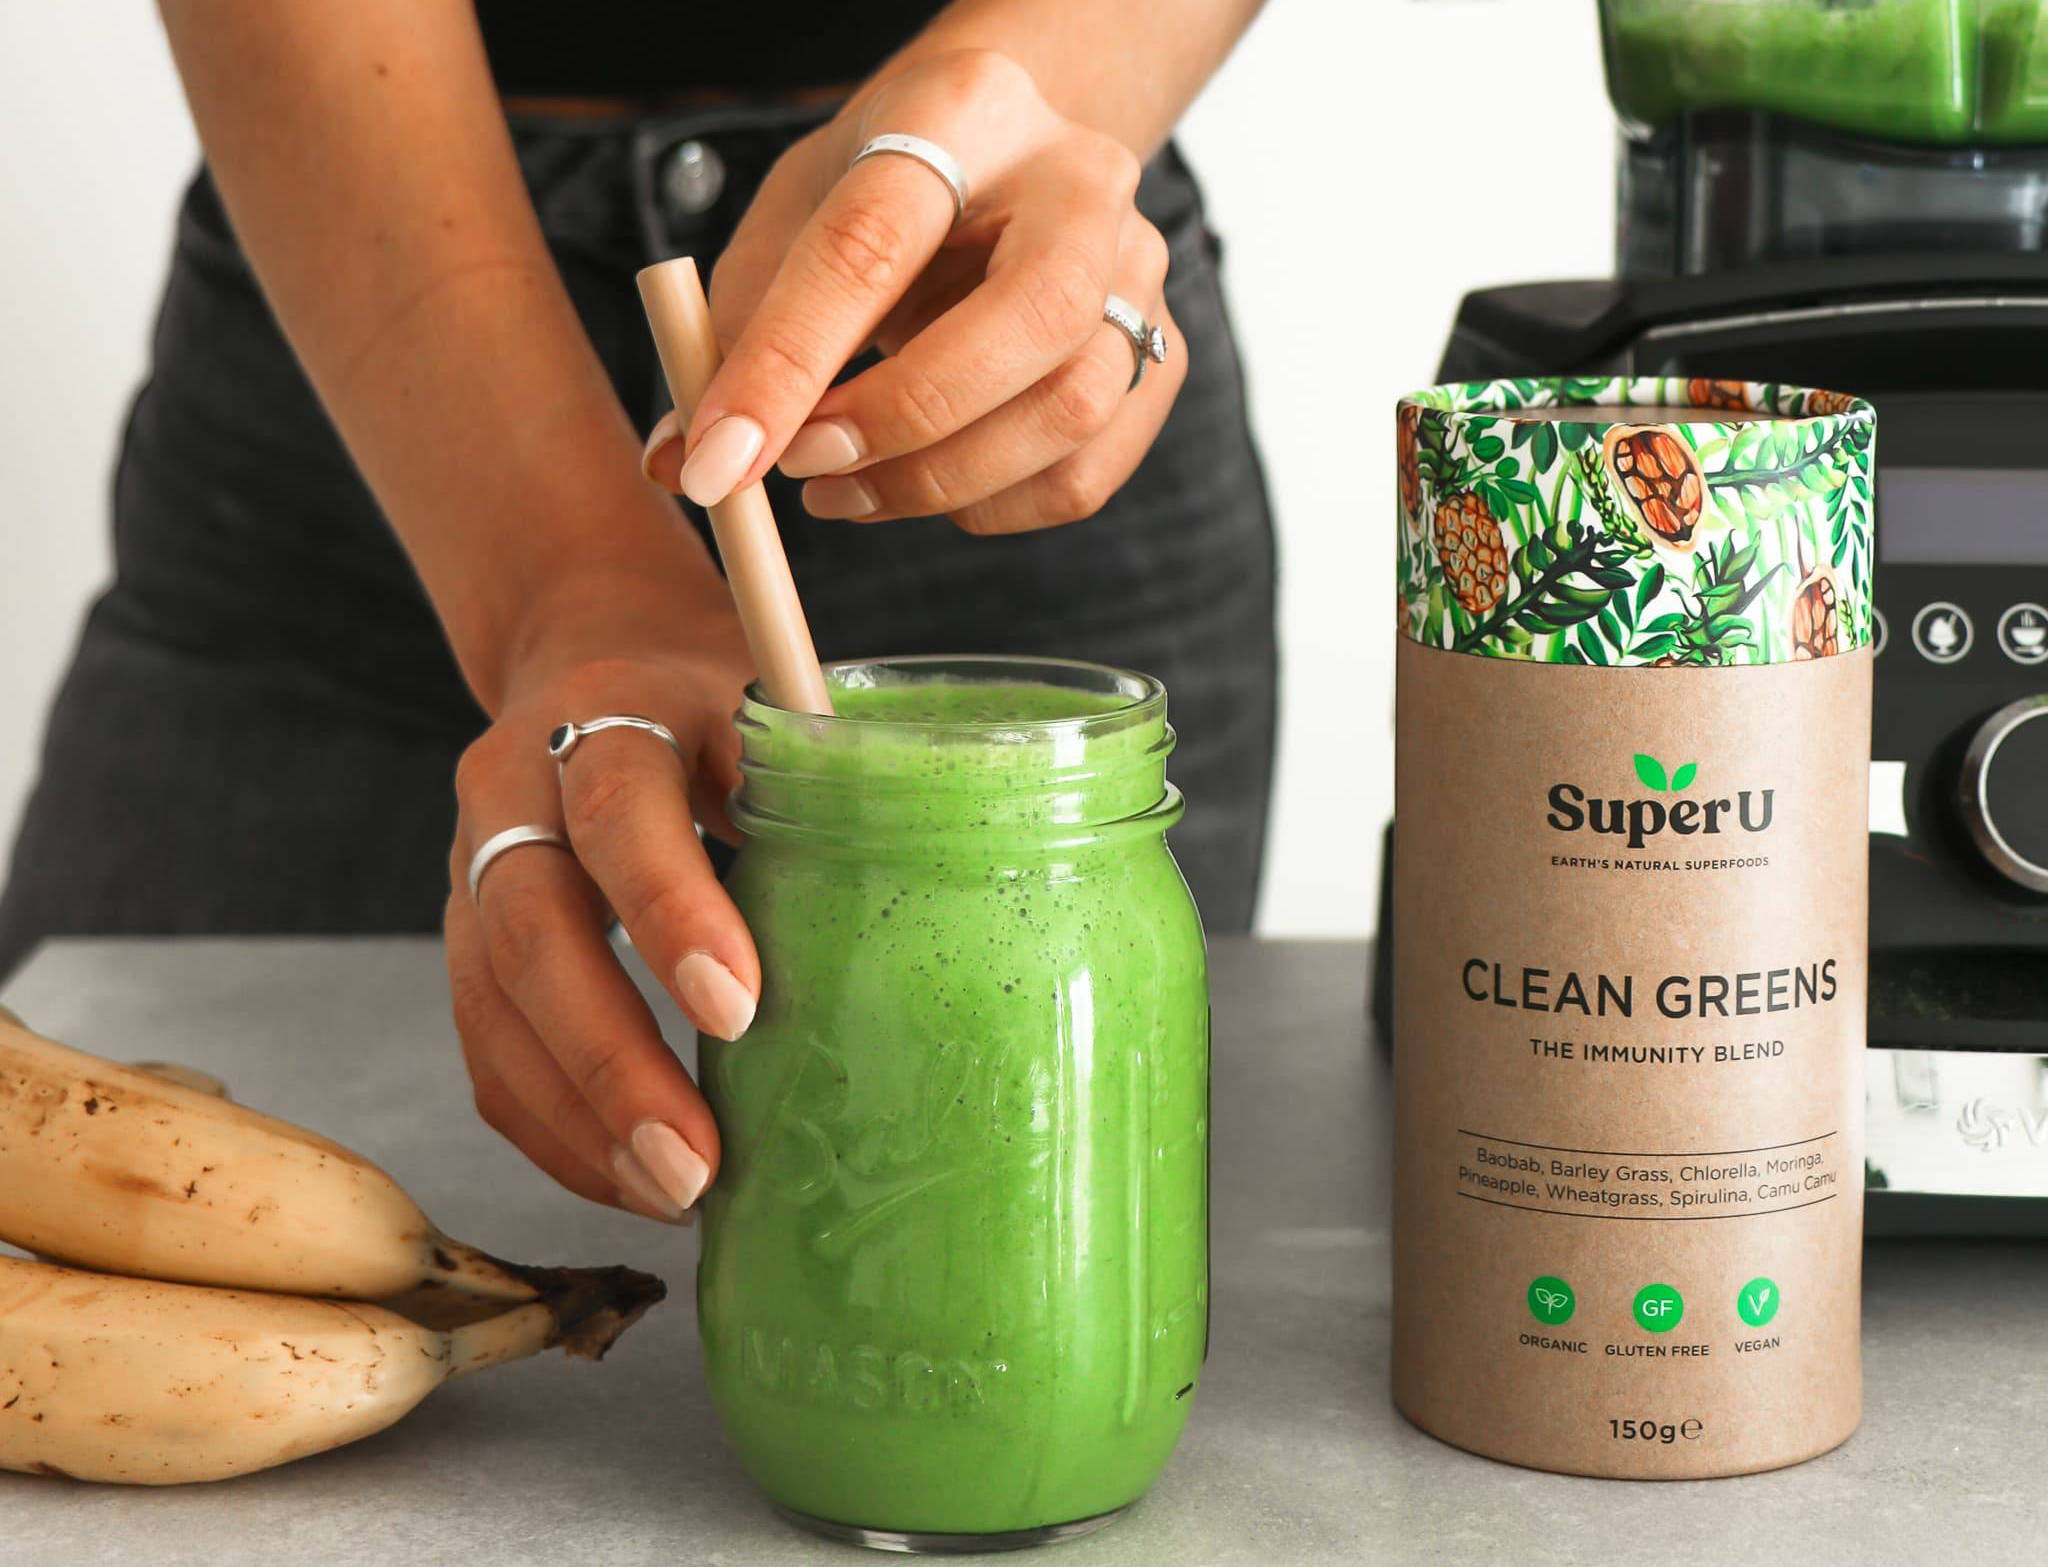 Clean greens healthy superfood drink with wheatgrass and barley grass, gluten free and organic